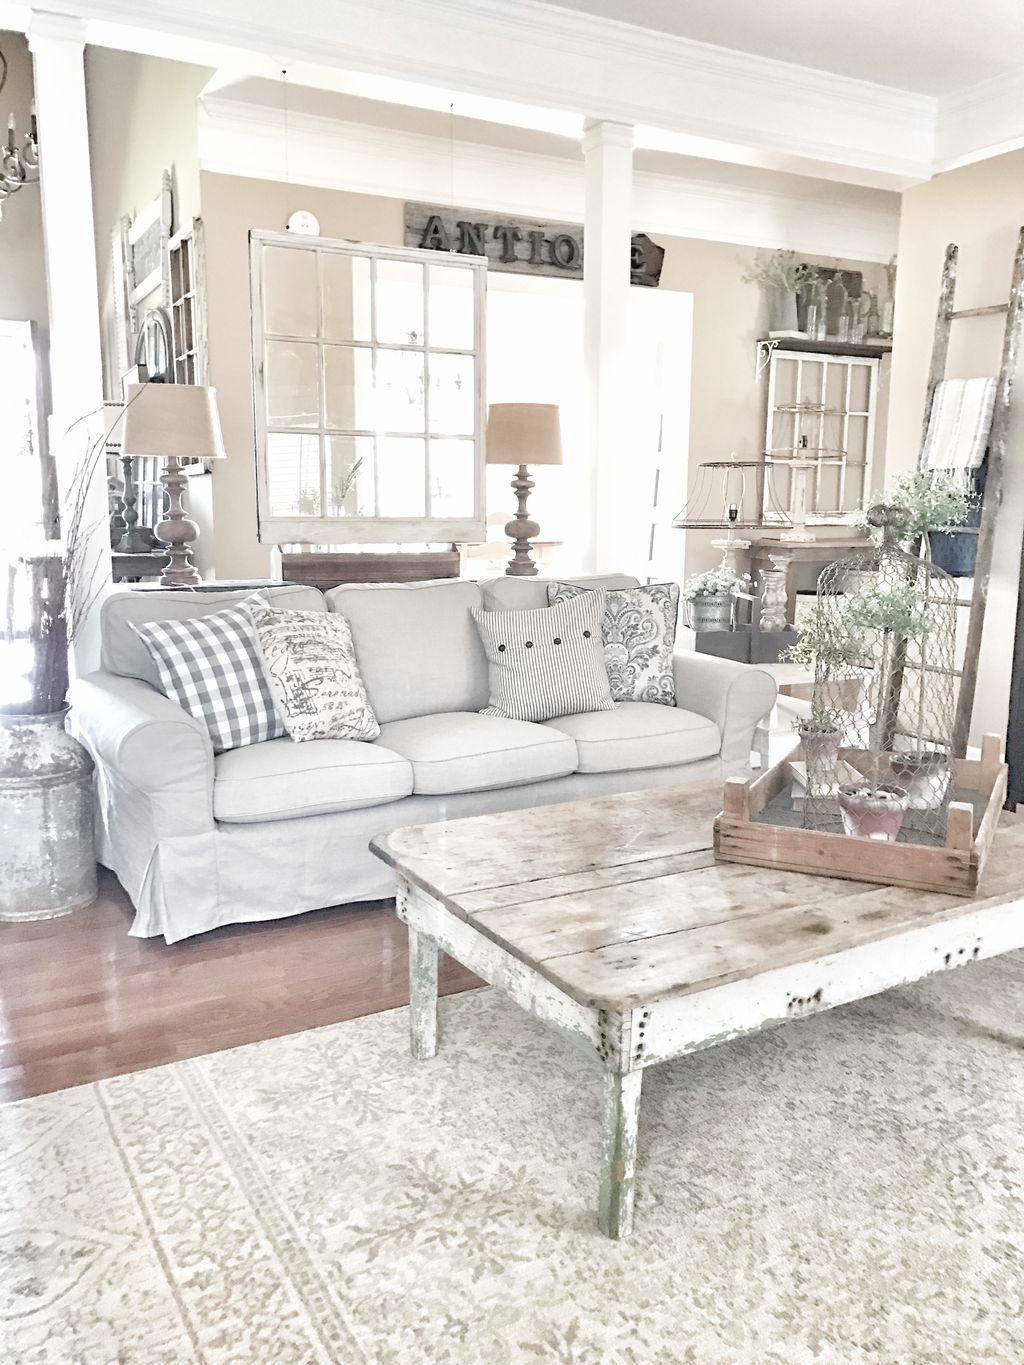 Stunning french country living room decor ideas (36 | Farmhouse ...